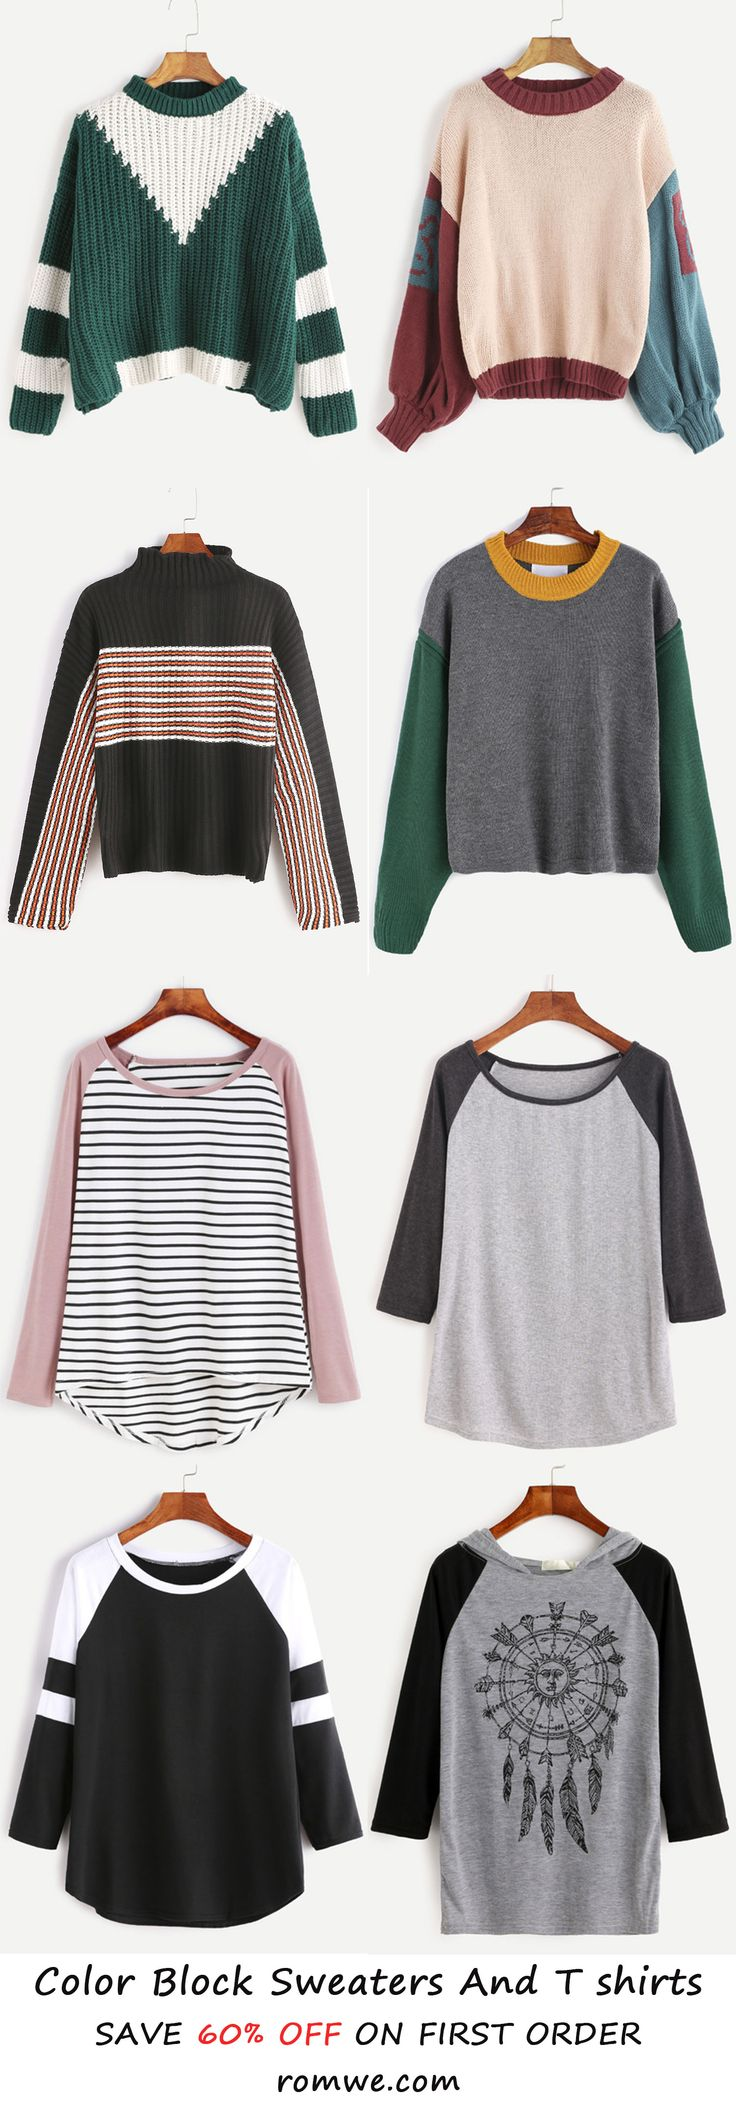 Fall & Winter Chic - Color Blcok Sweatshirts and T shirts from romwe.com